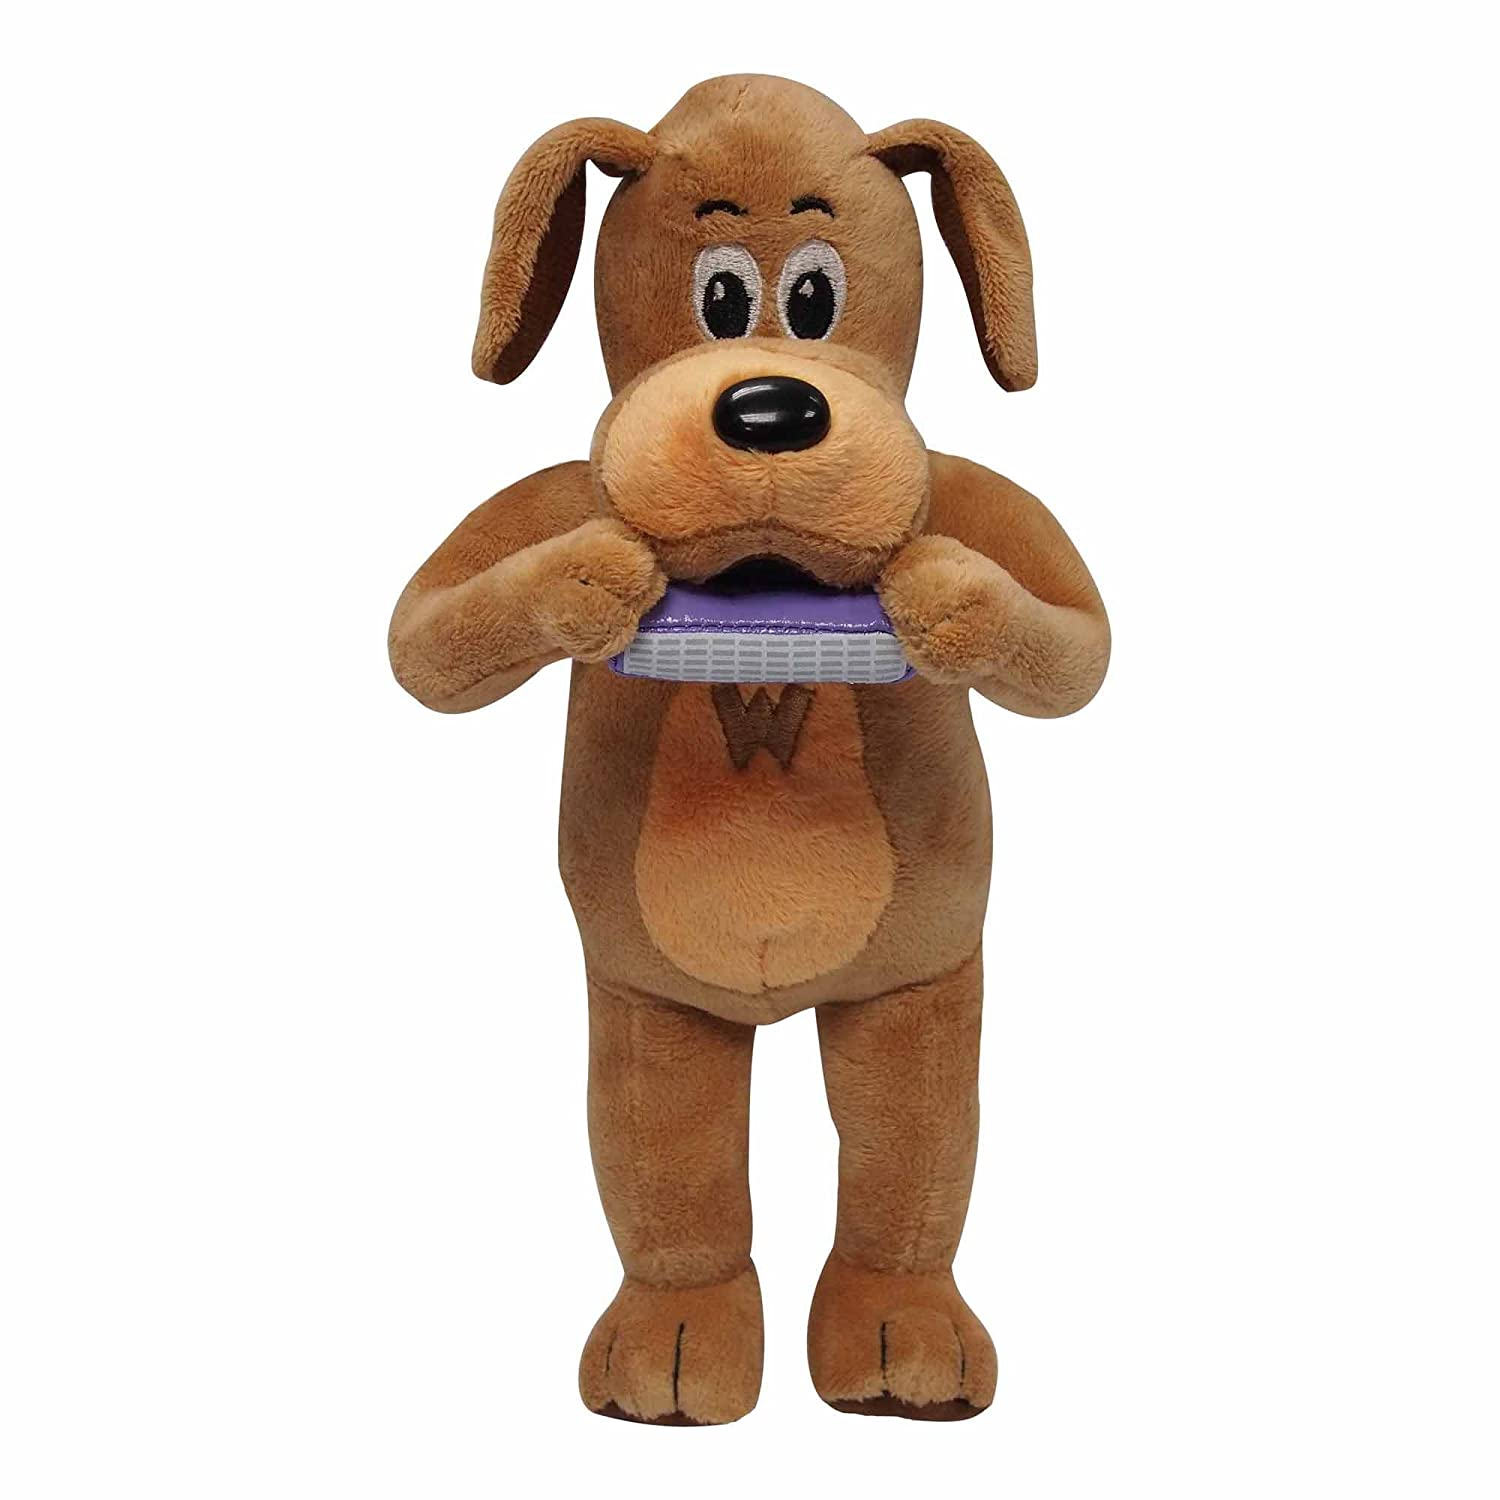 amazon com the wiggles wags the dog plush 10 inches toys u0026 games